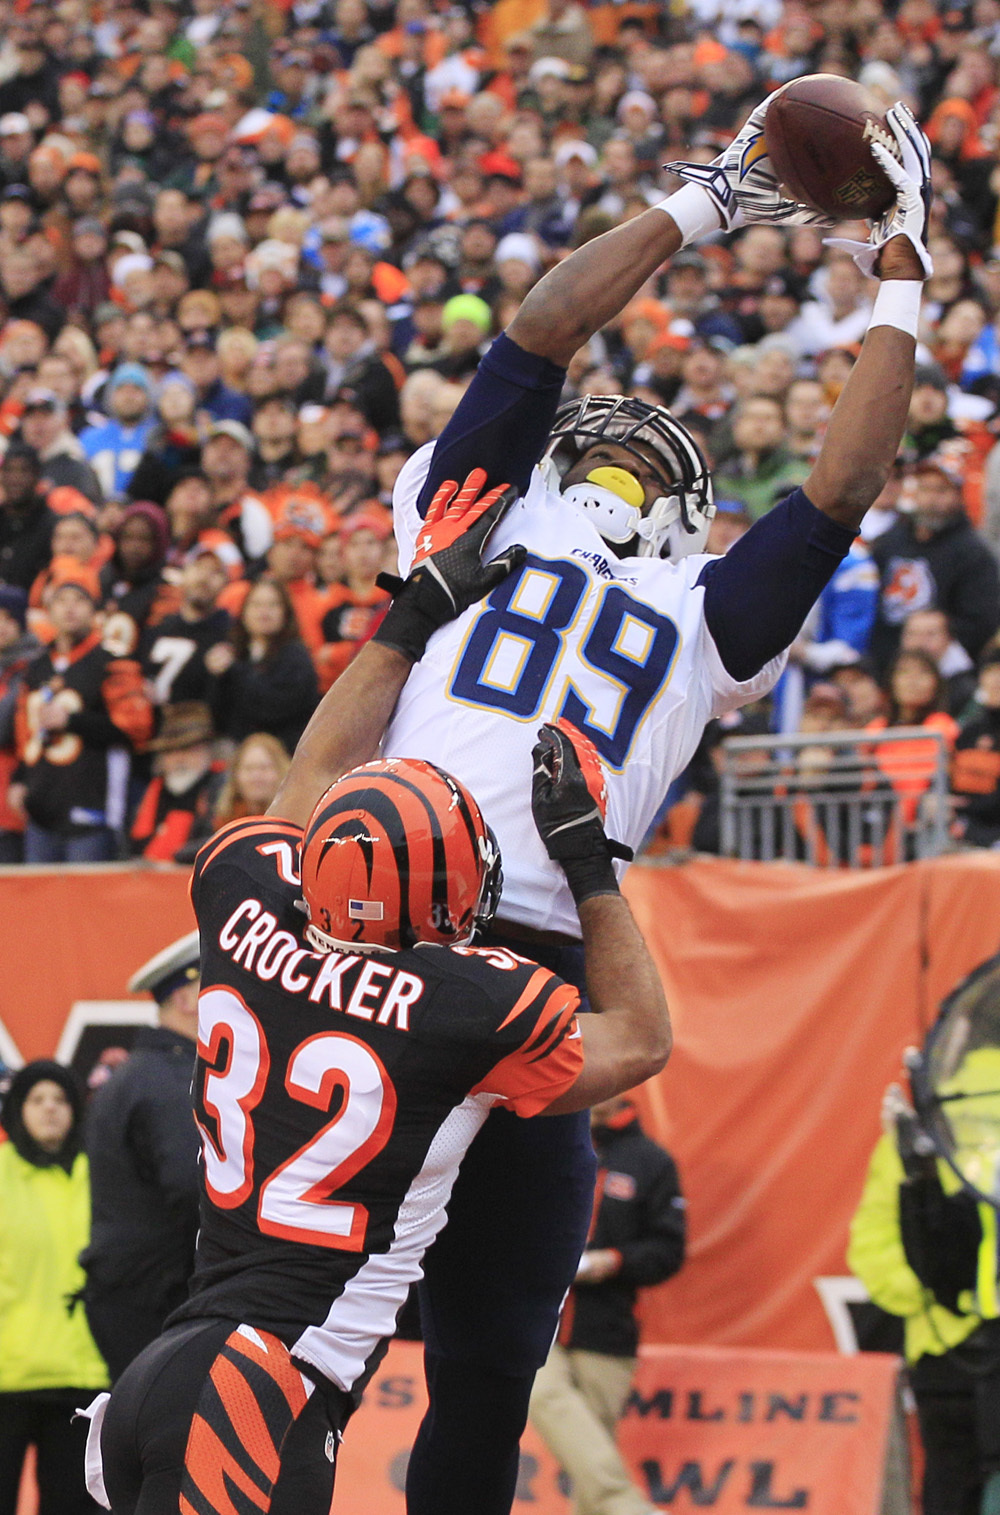 AFC Wild Card game: Chargers 27, Bengals 10